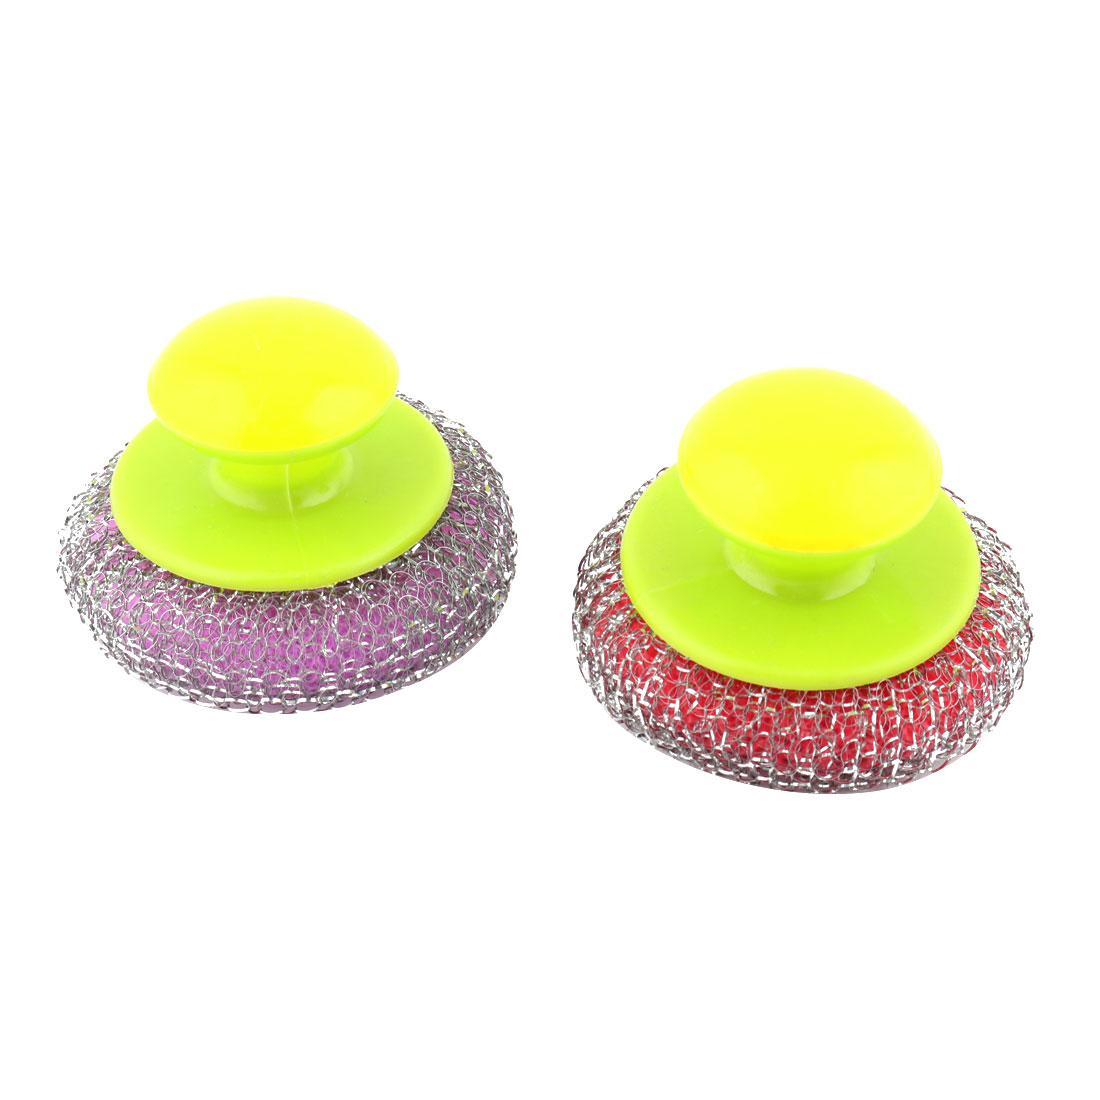 Home Plastic Handle Metal Wire Ball Pot Wok Cleaning Brush Assorted Color 2 Pcs